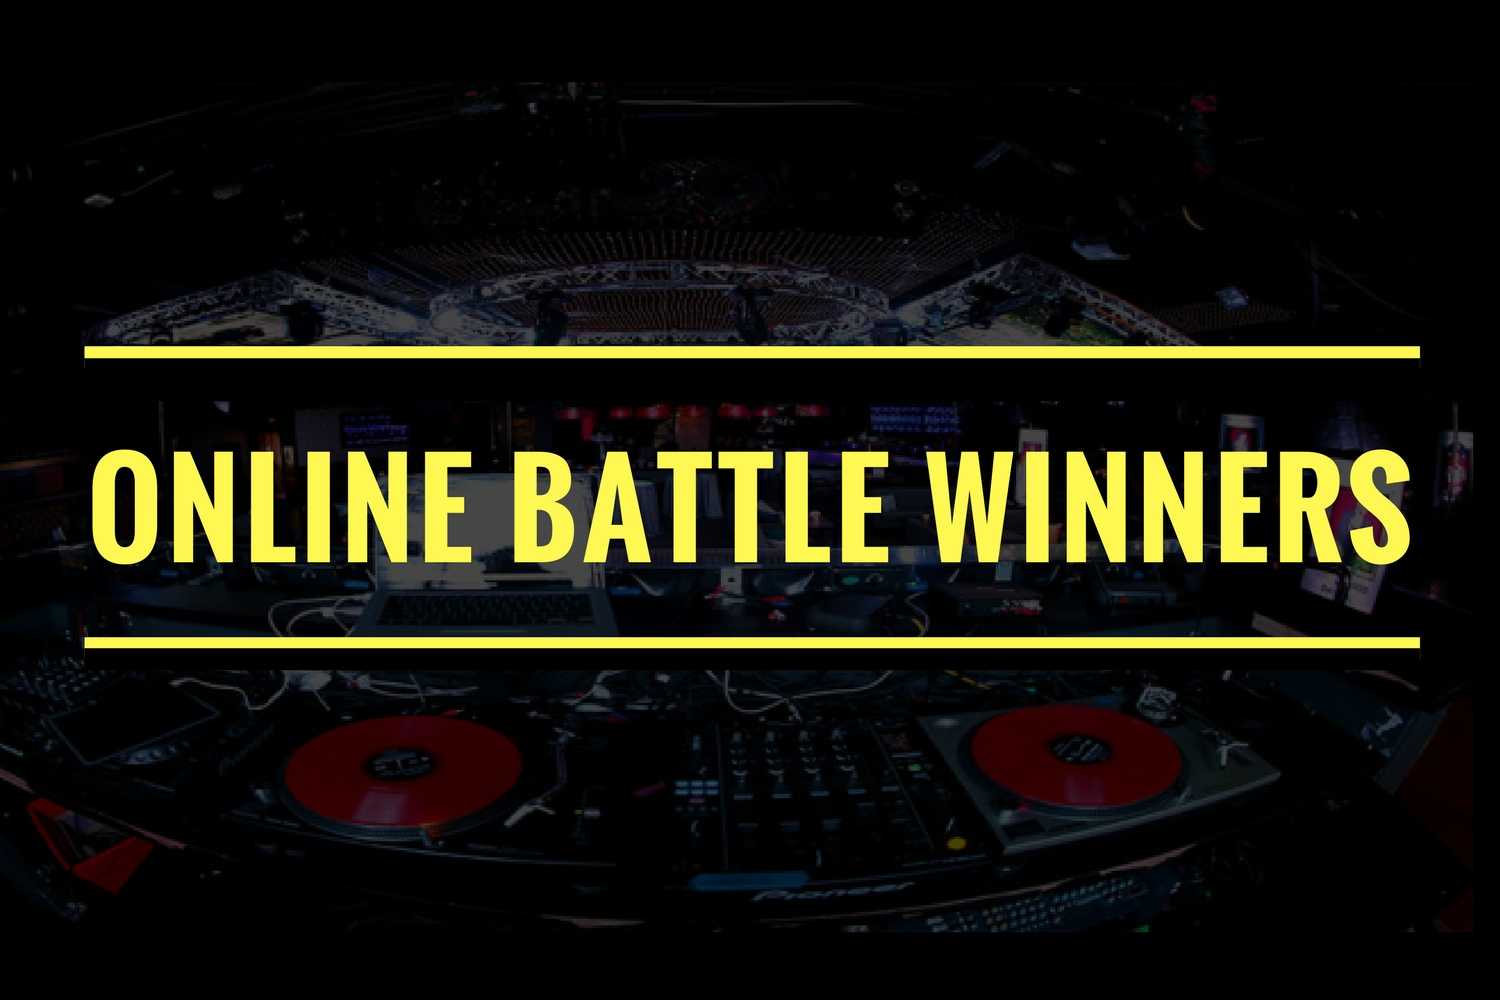 Online Battle Winners